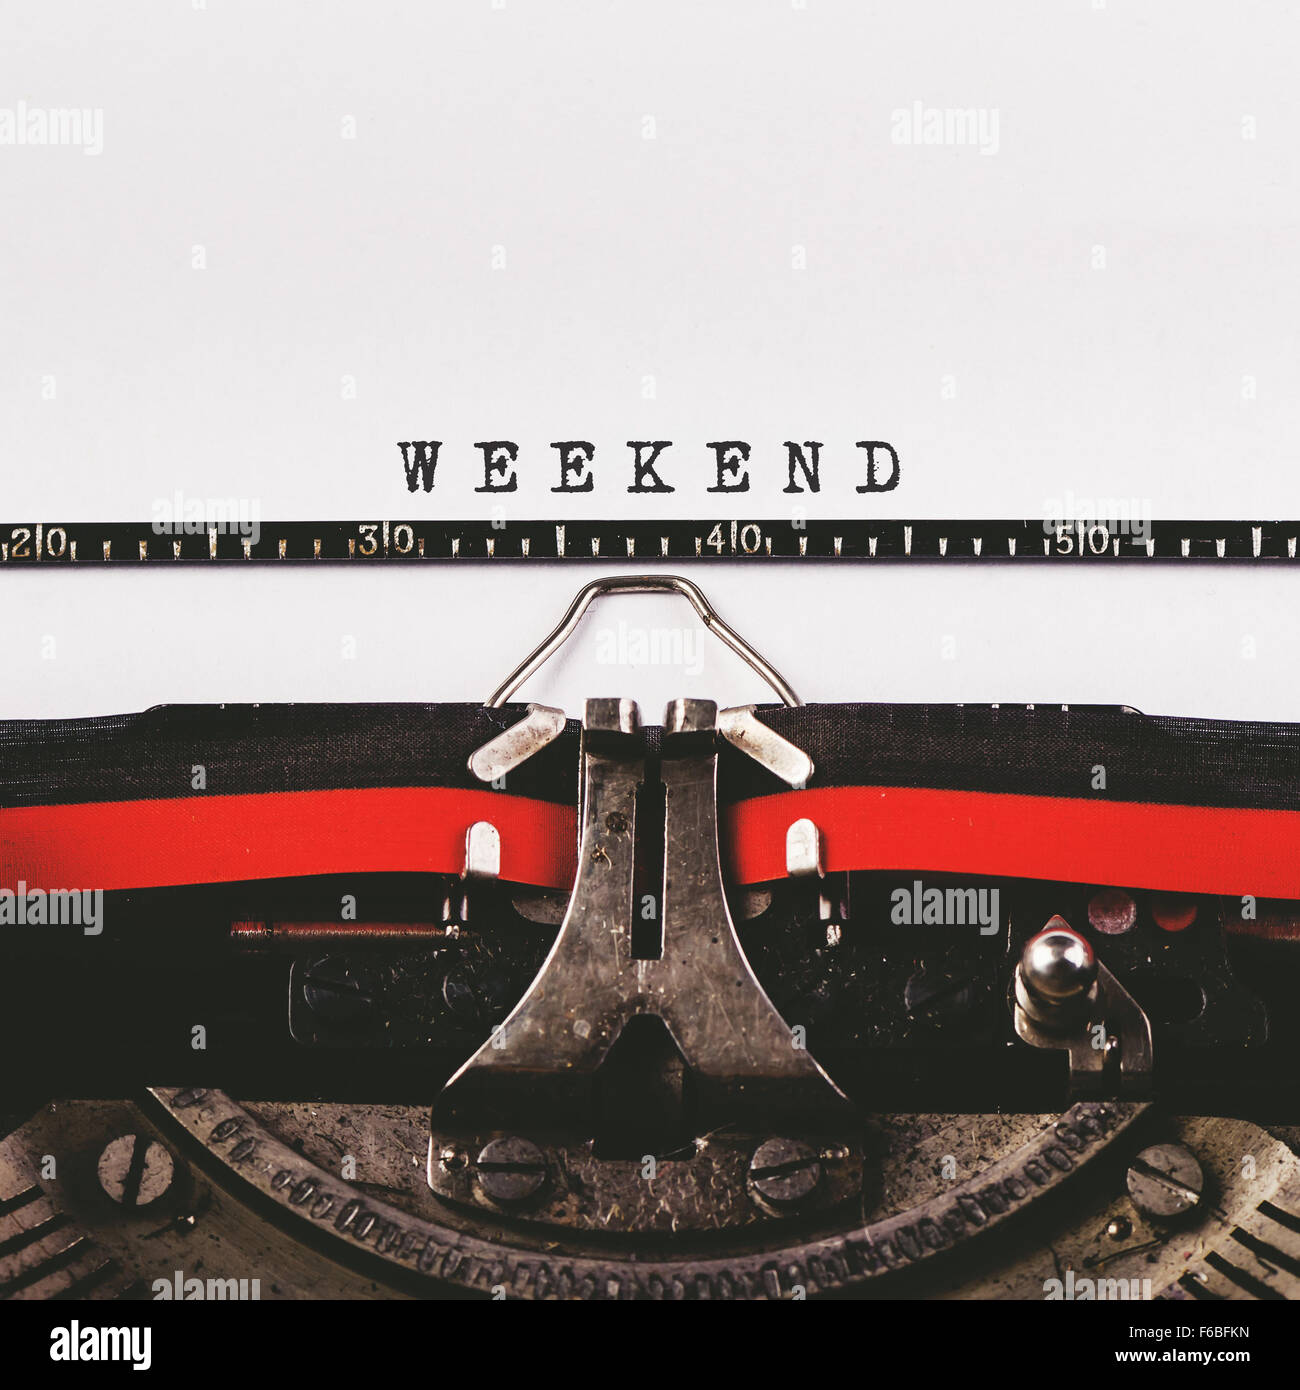 Weekend text on old typewriter, retro toned conceptual image - Stock Image